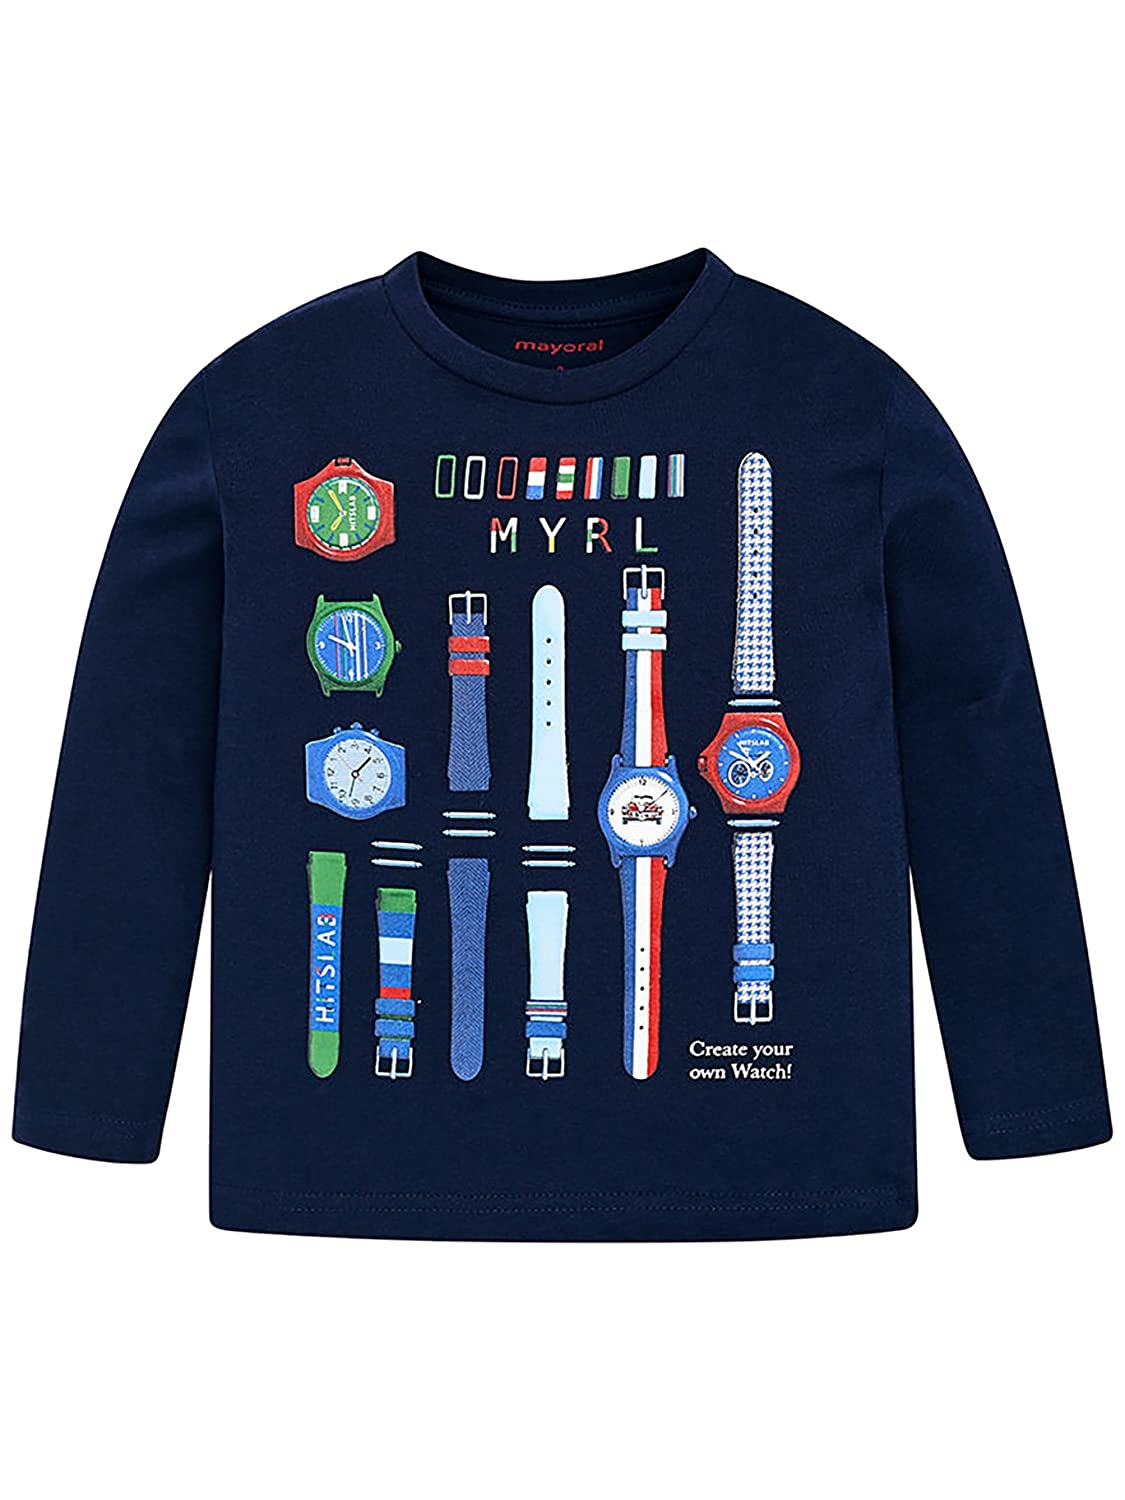 Mayoral Eclipse 4014 Long Sleeve for Boys